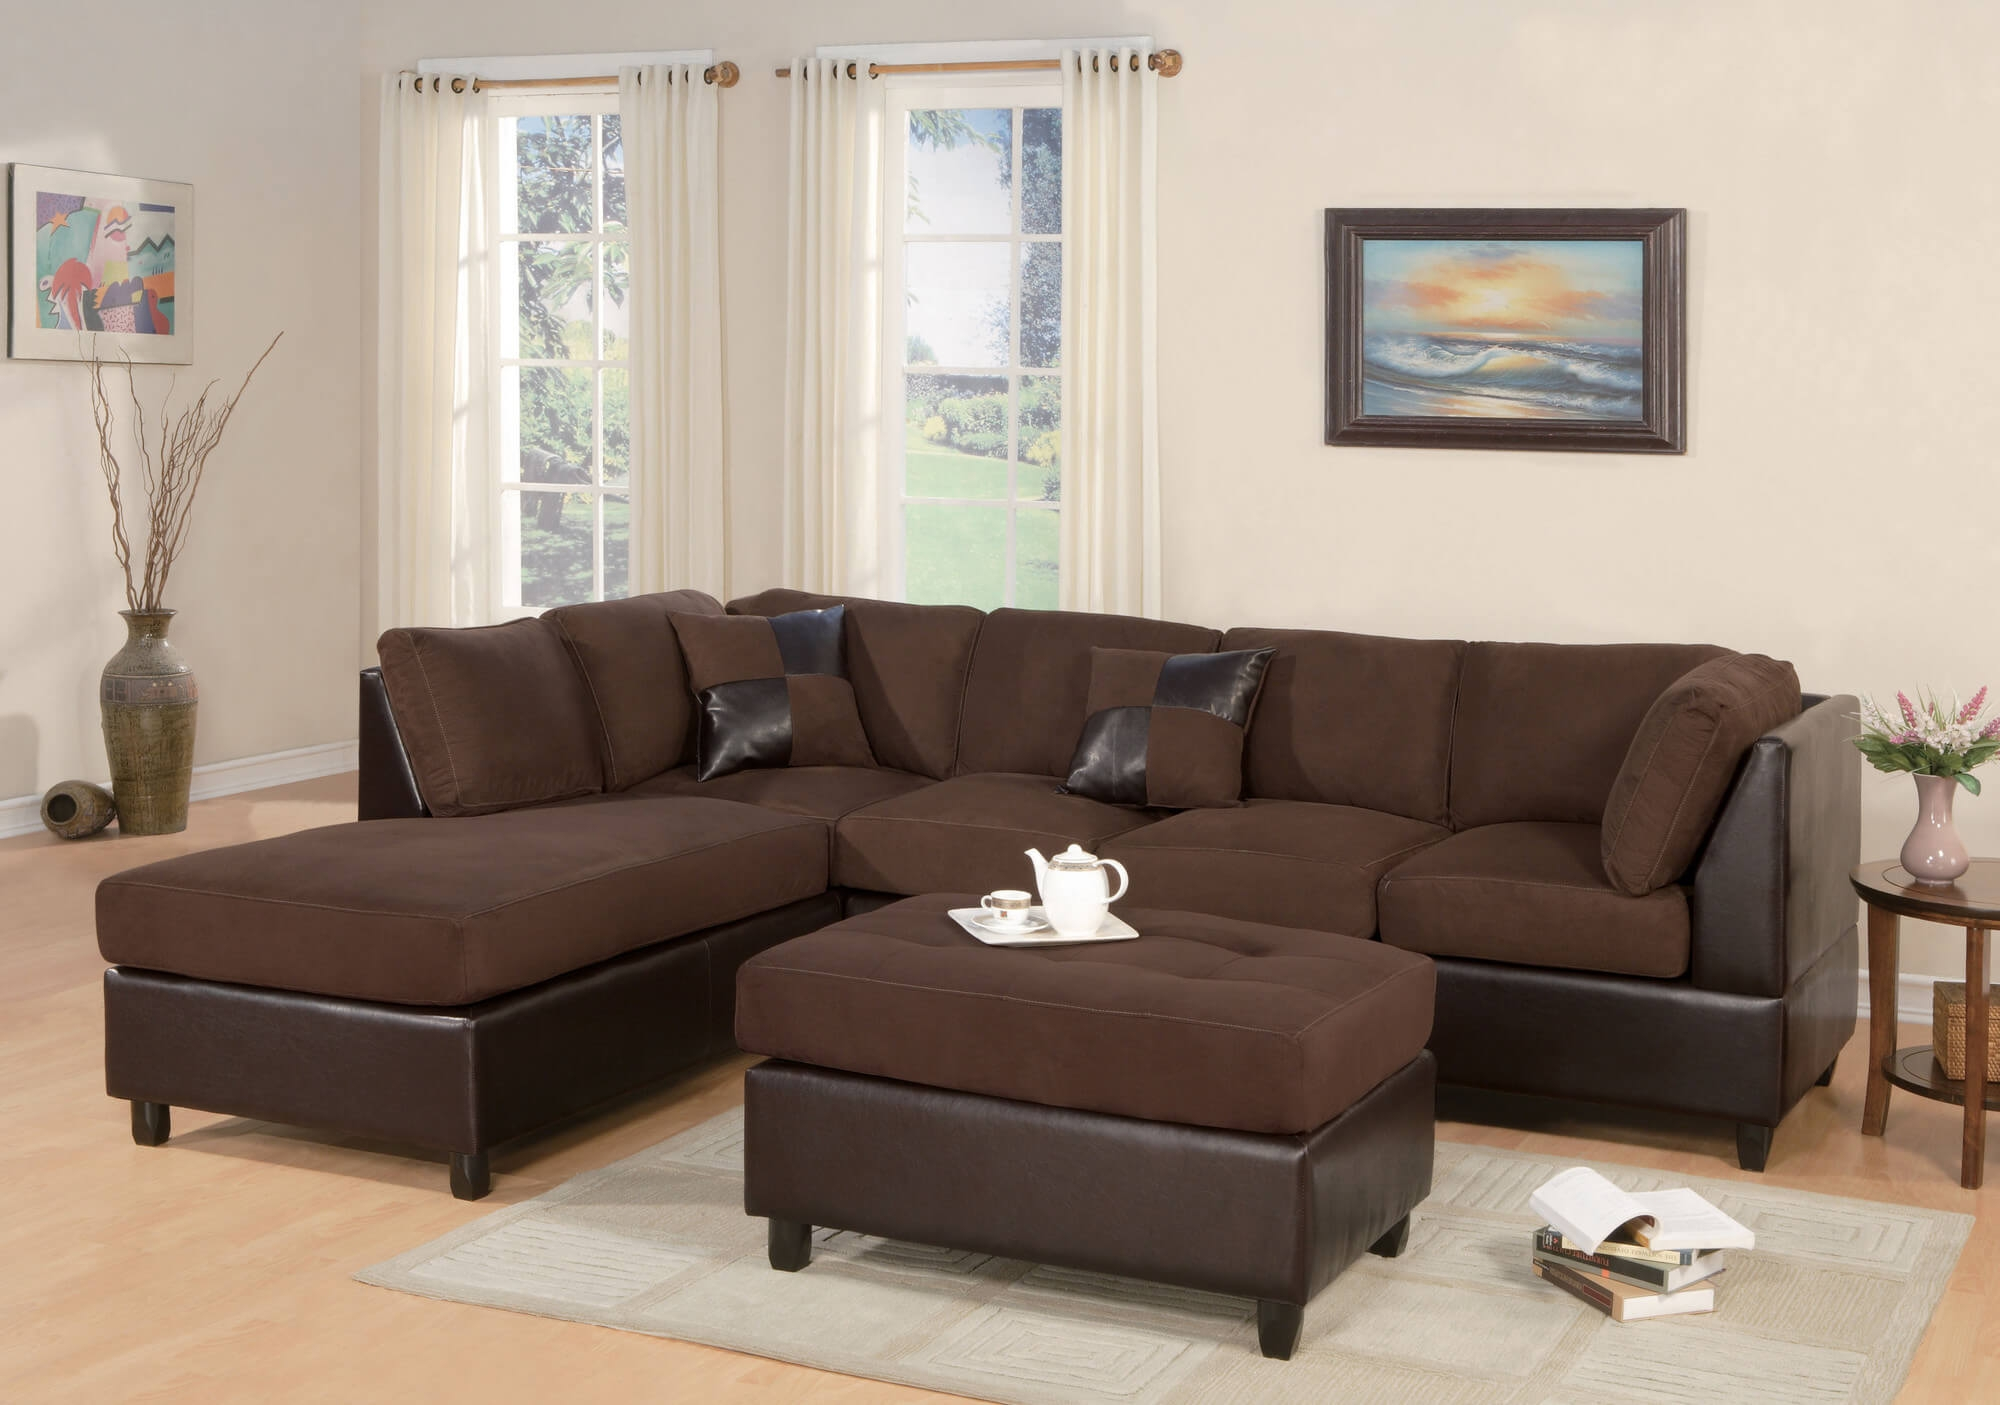 Decor Artificial Classic Corduroy Sectional Sofa For Unique With Regard To Extra Wide Sectional Sofas (View 9 of 15)